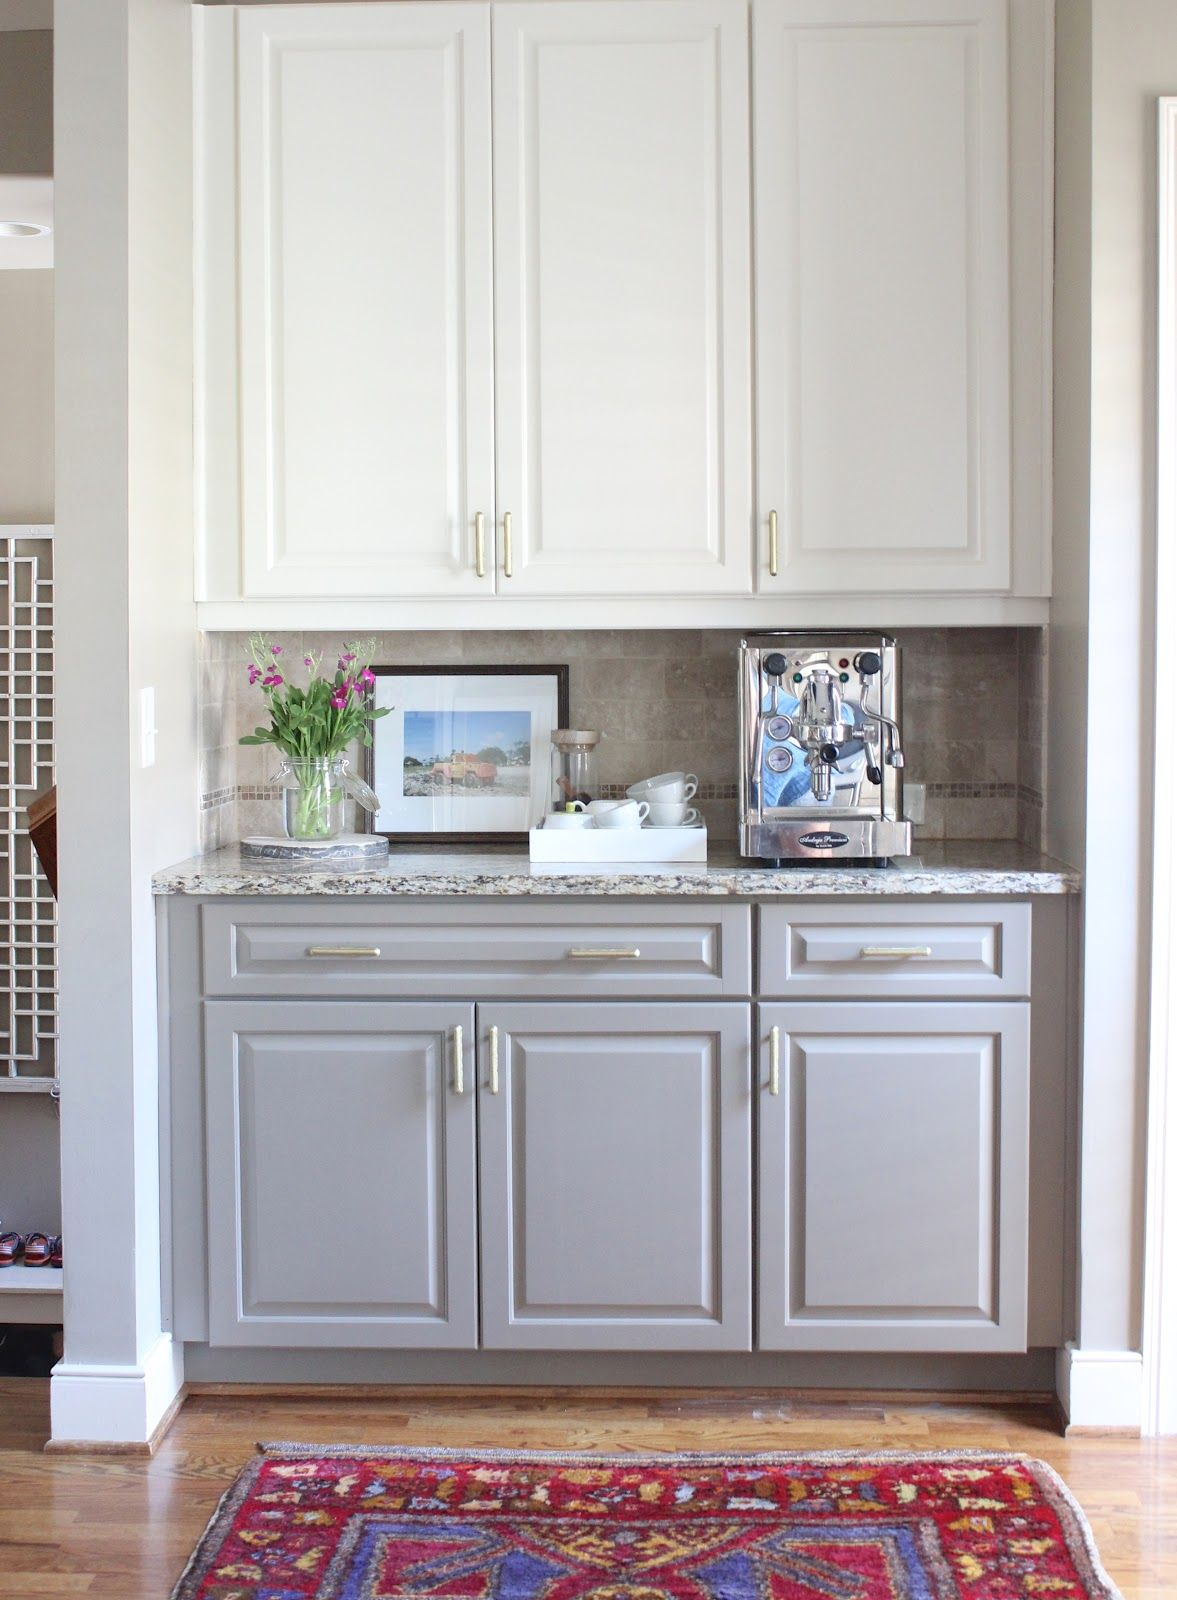 White And Gray Kitchen Two Toned Kitchen Cabinetswhite On Top Gray On Bottom With